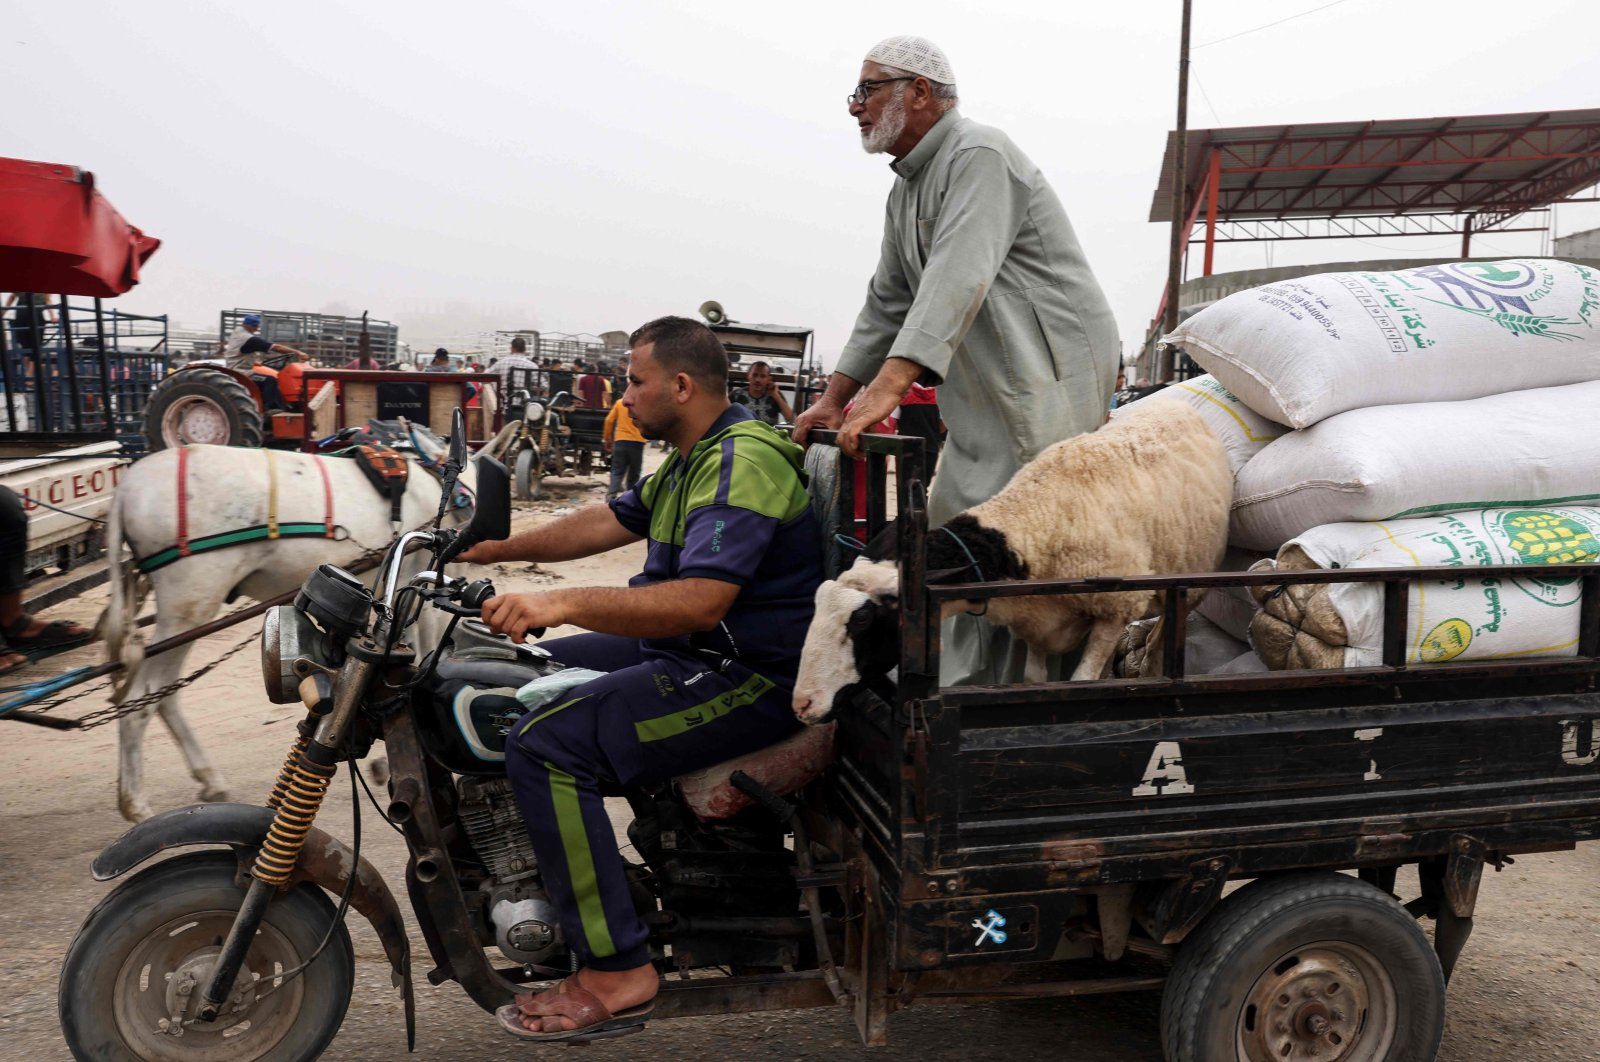 Palestinians drive away with a sheep they just purchased at a livestock market, ahead of Eid al-Adha, in Rafah in the southern Gaza Strip, on July 17, 2021. (AFP Photo)